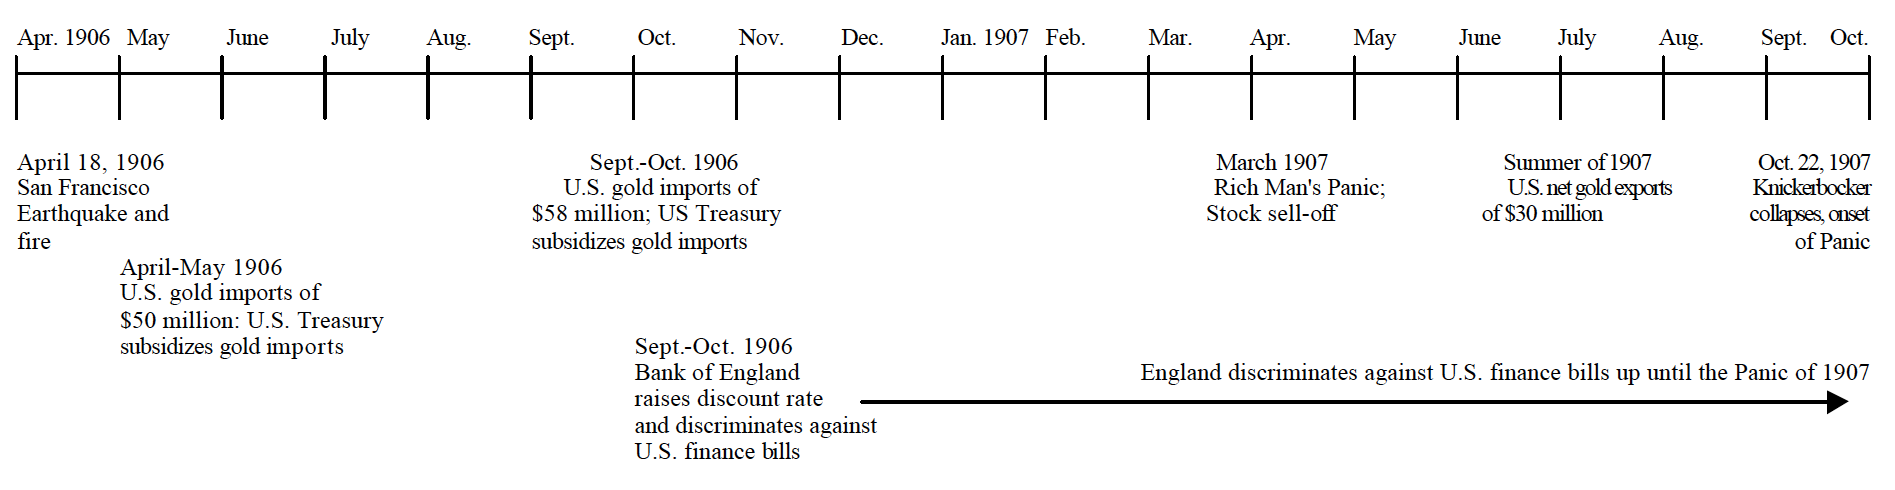 bantam inc jack duval timeline of san francisco earthquake fire and the panic of 1907